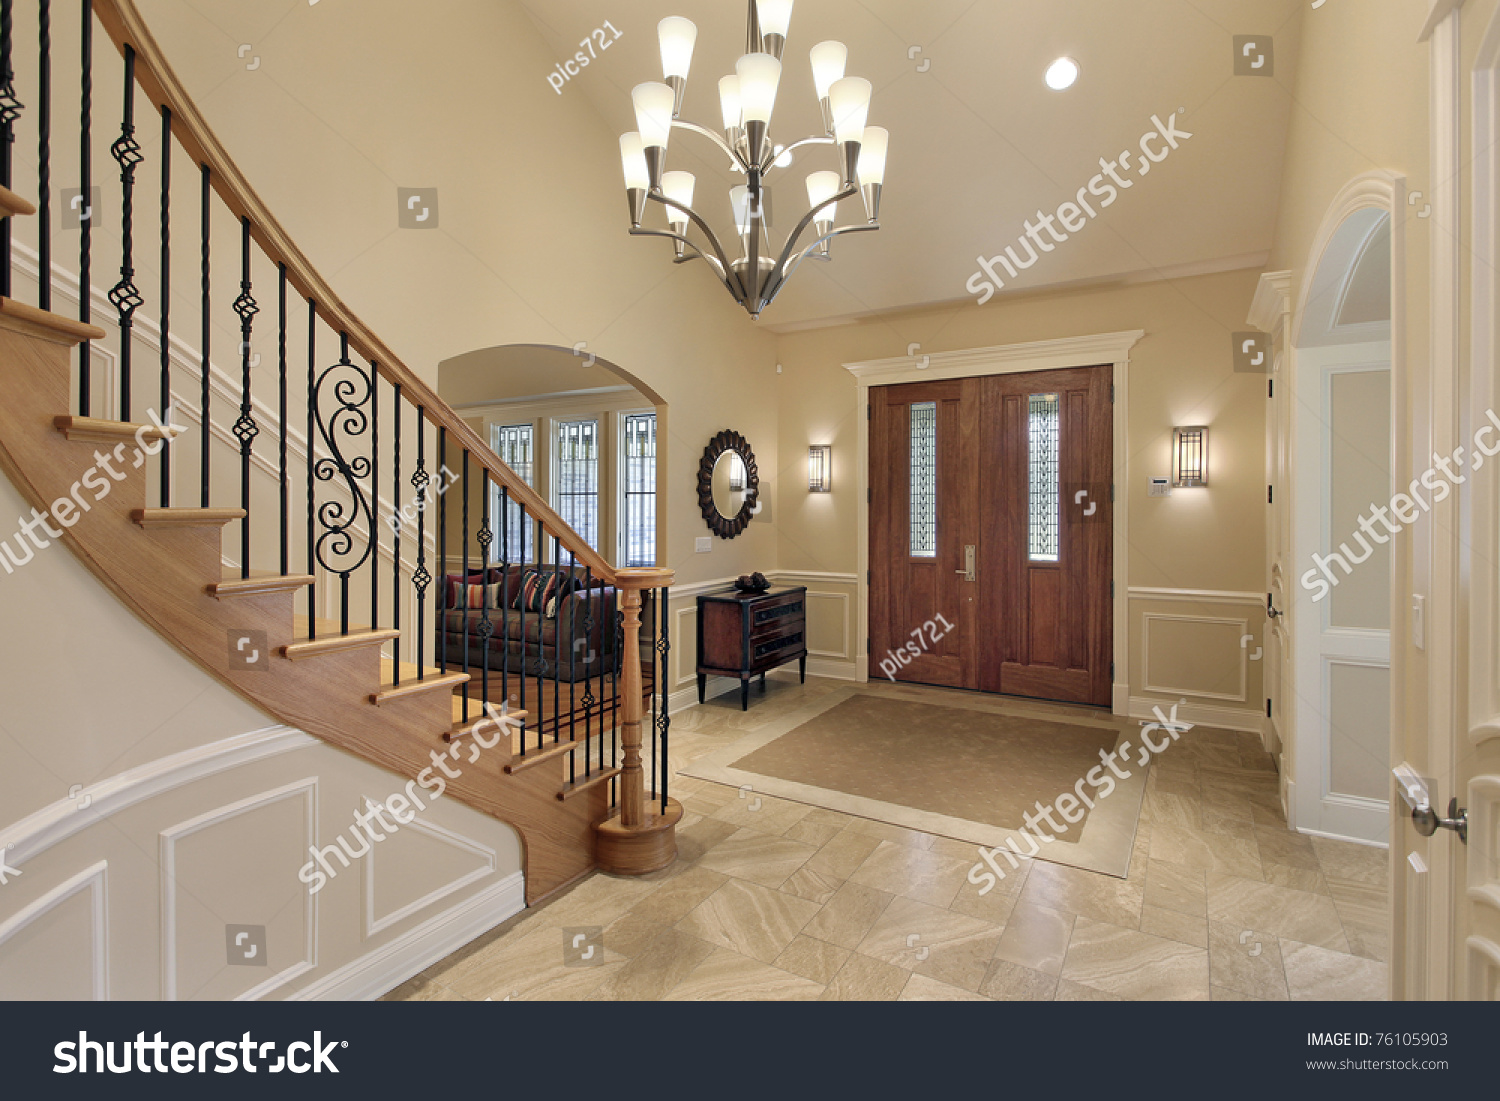 Foyer Luxury Home Curved Staircase Stock Photo 76105903 - Shutterstock